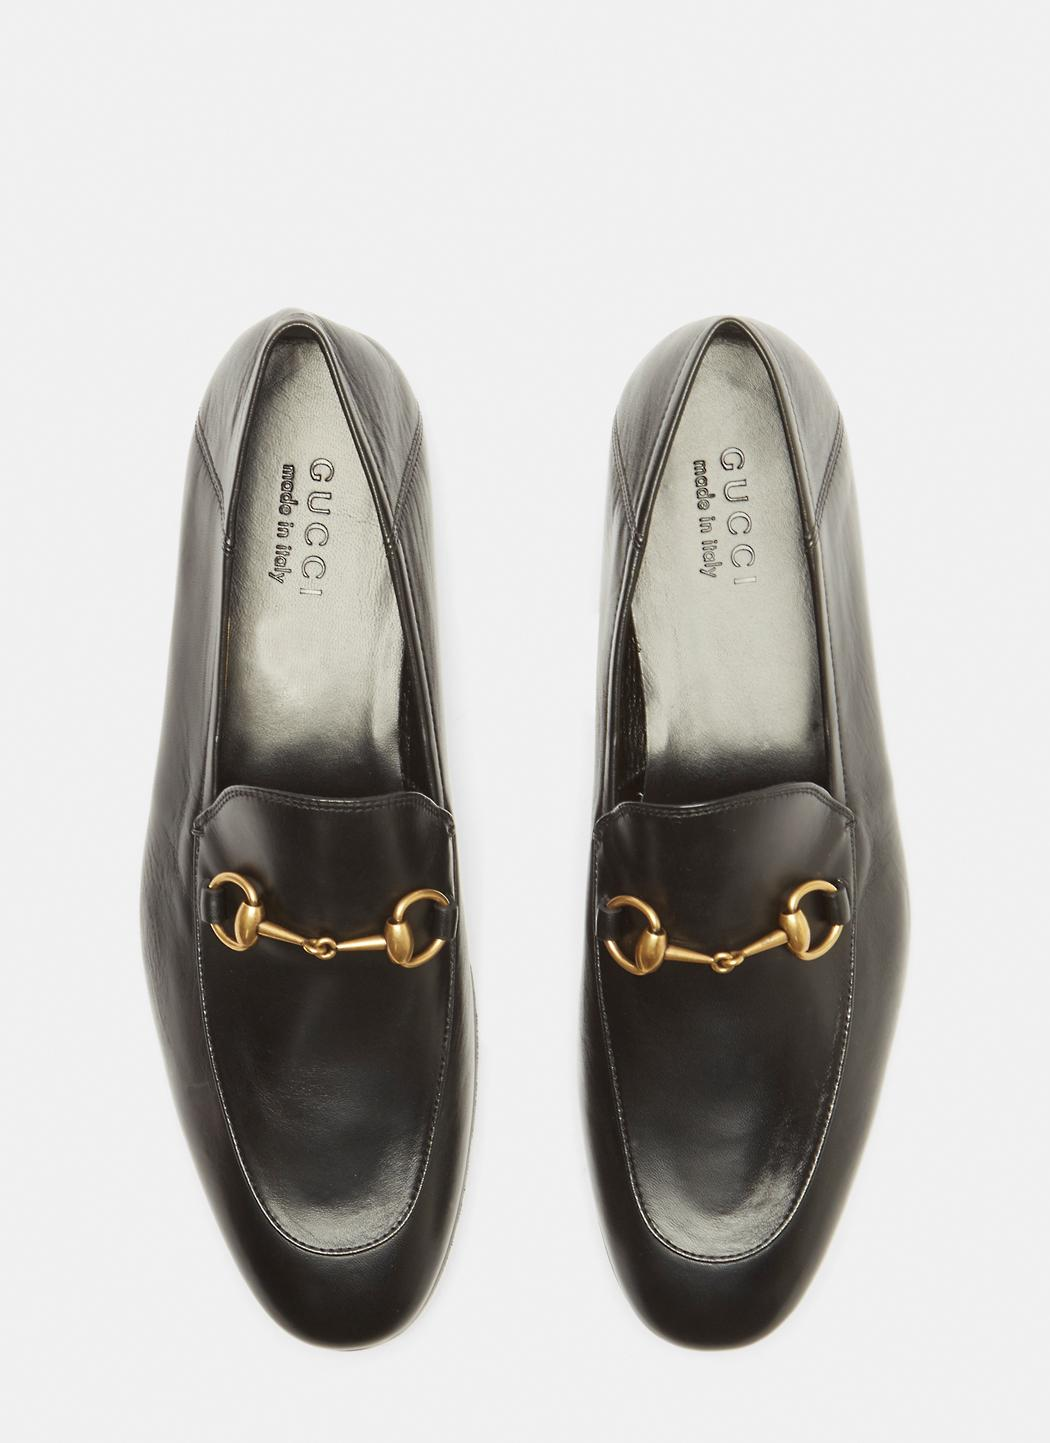 9f6adea5162 Gucci - Brixton Leather Loafers In Black for Men - Lyst. View fullscreen